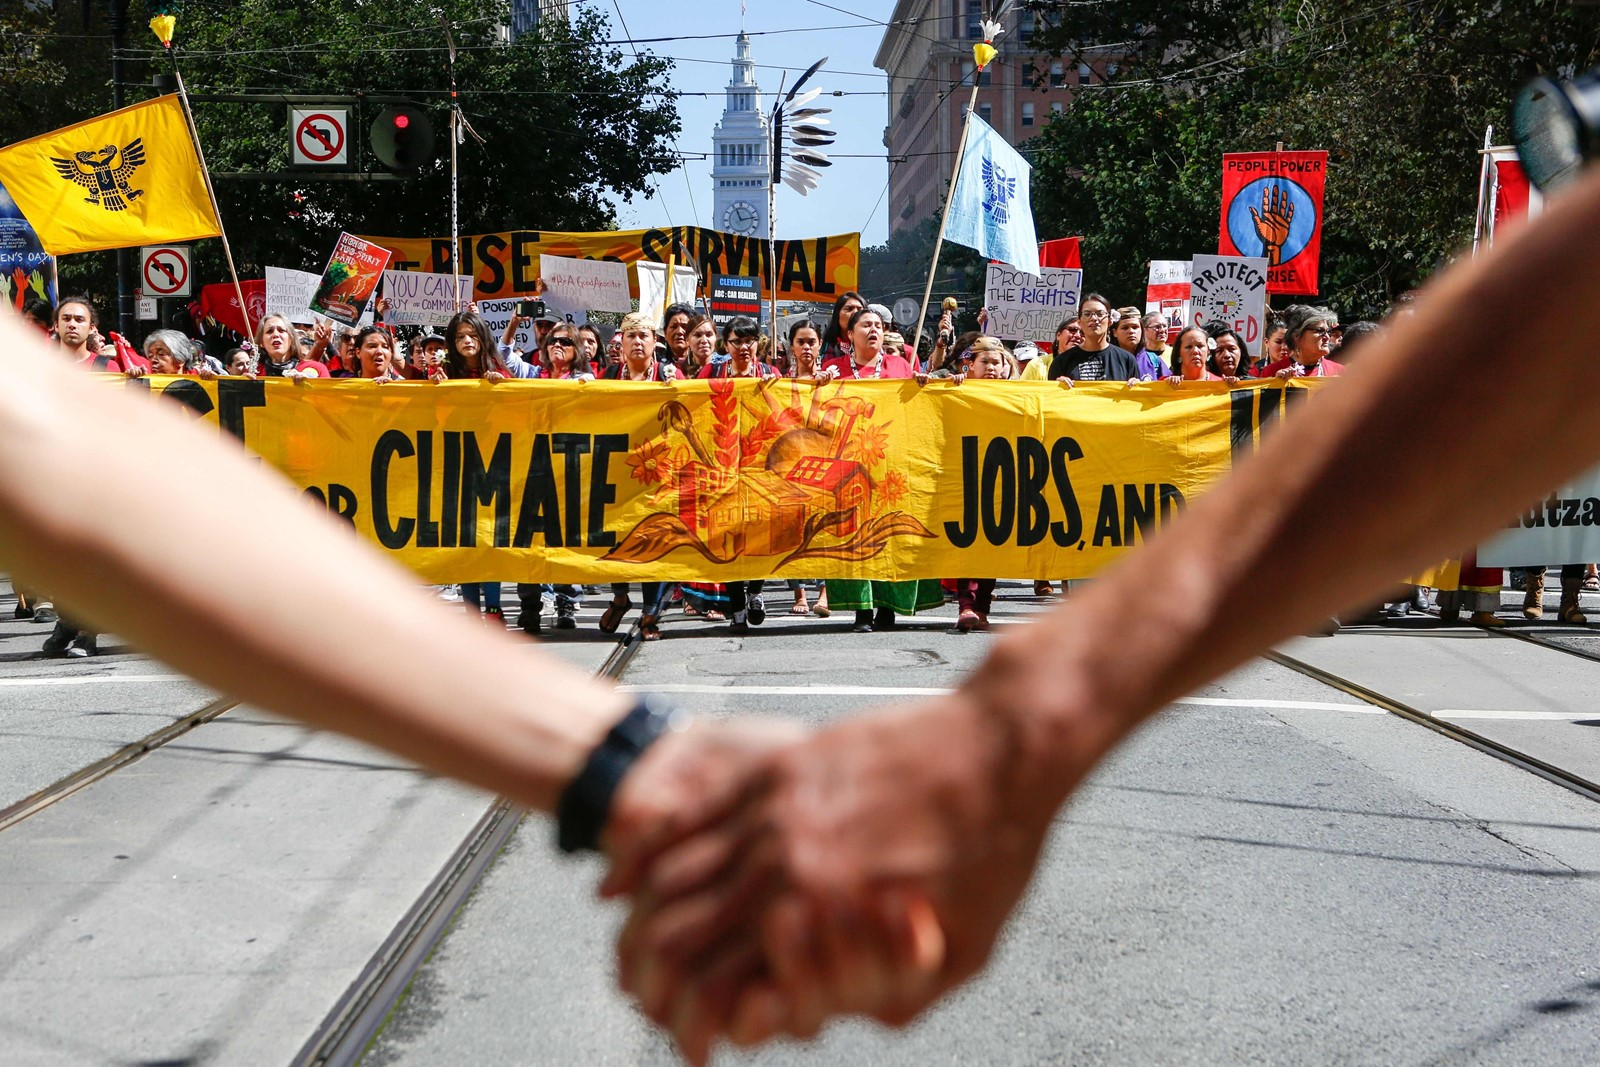 Climate change activists march in San Francisco last week. Climate thinkers, celebrities and political leaders will gather in the city this week. — Photograph: Amy Osborne/Agence France-Presse/Getty Images.